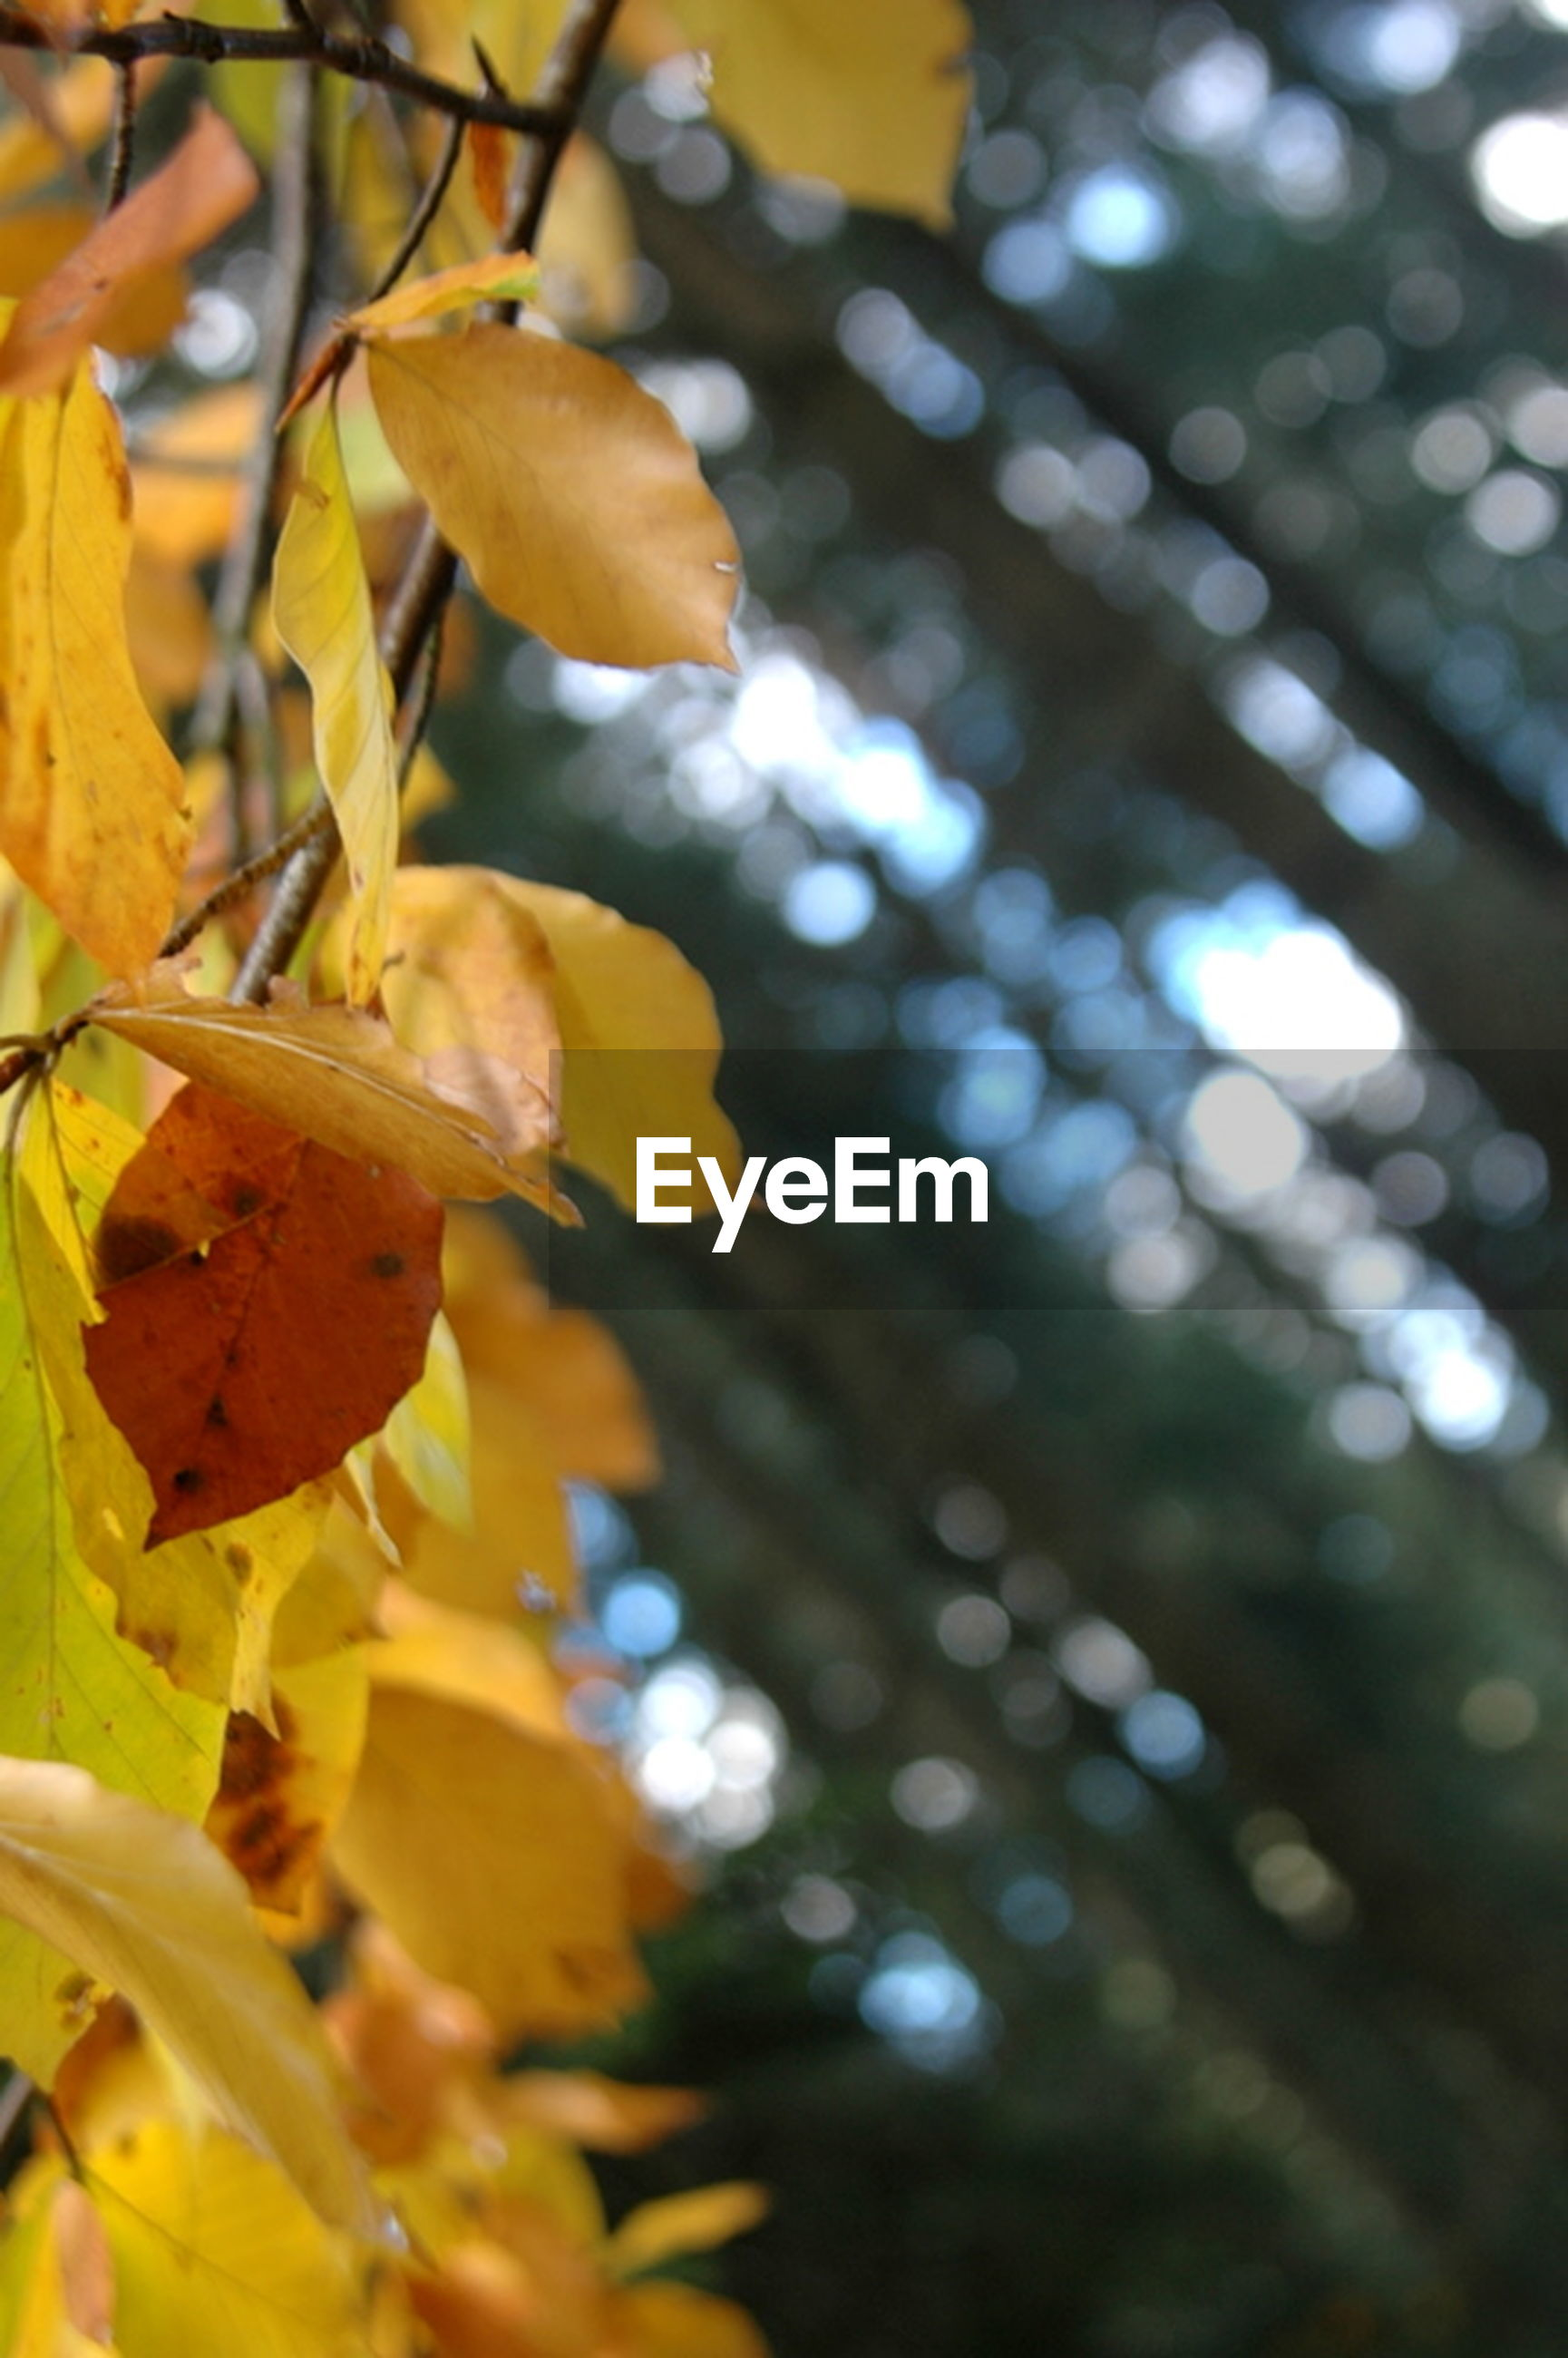 leaf, autumn, branch, growth, yellow, season, tree, change, leaves, nature, focus on foreground, close-up, sunlight, beauty in nature, orange color, tranquility, selective focus, outdoors, day, no people